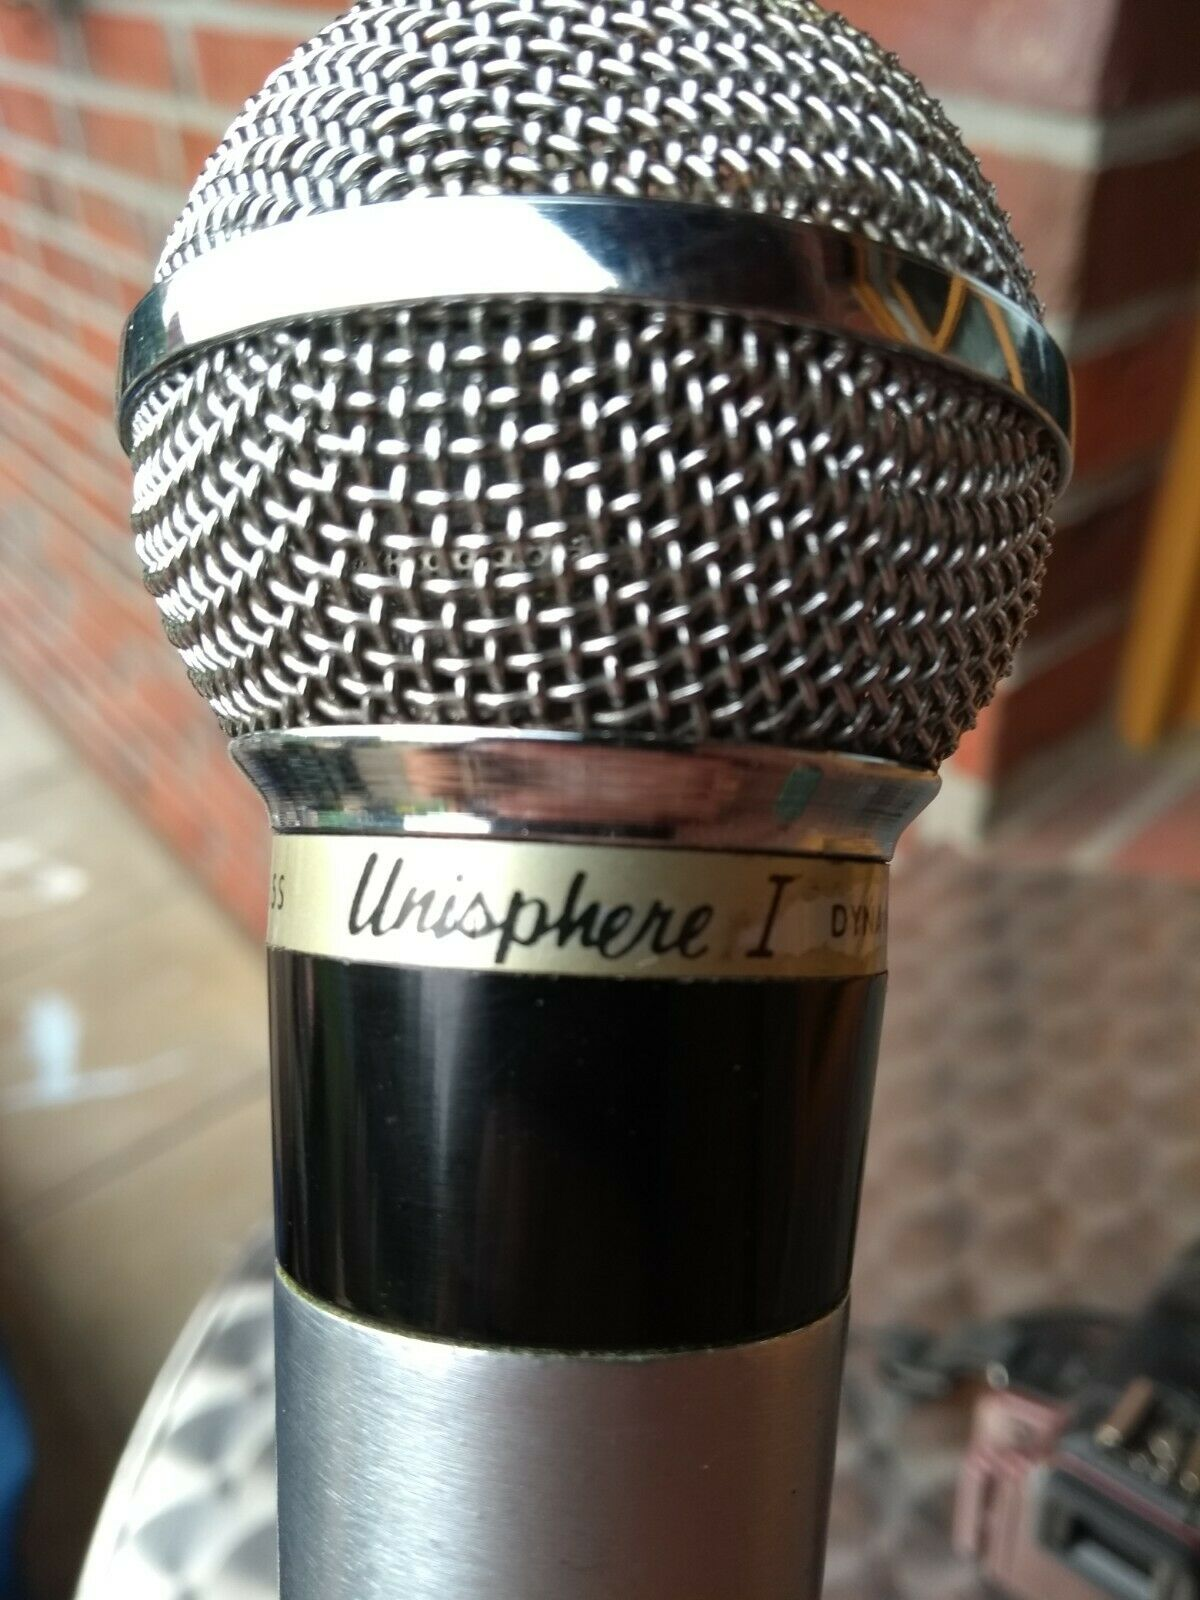 SHURE 565s Unisphere i MADE IN USA VINTAGE MICROFONO